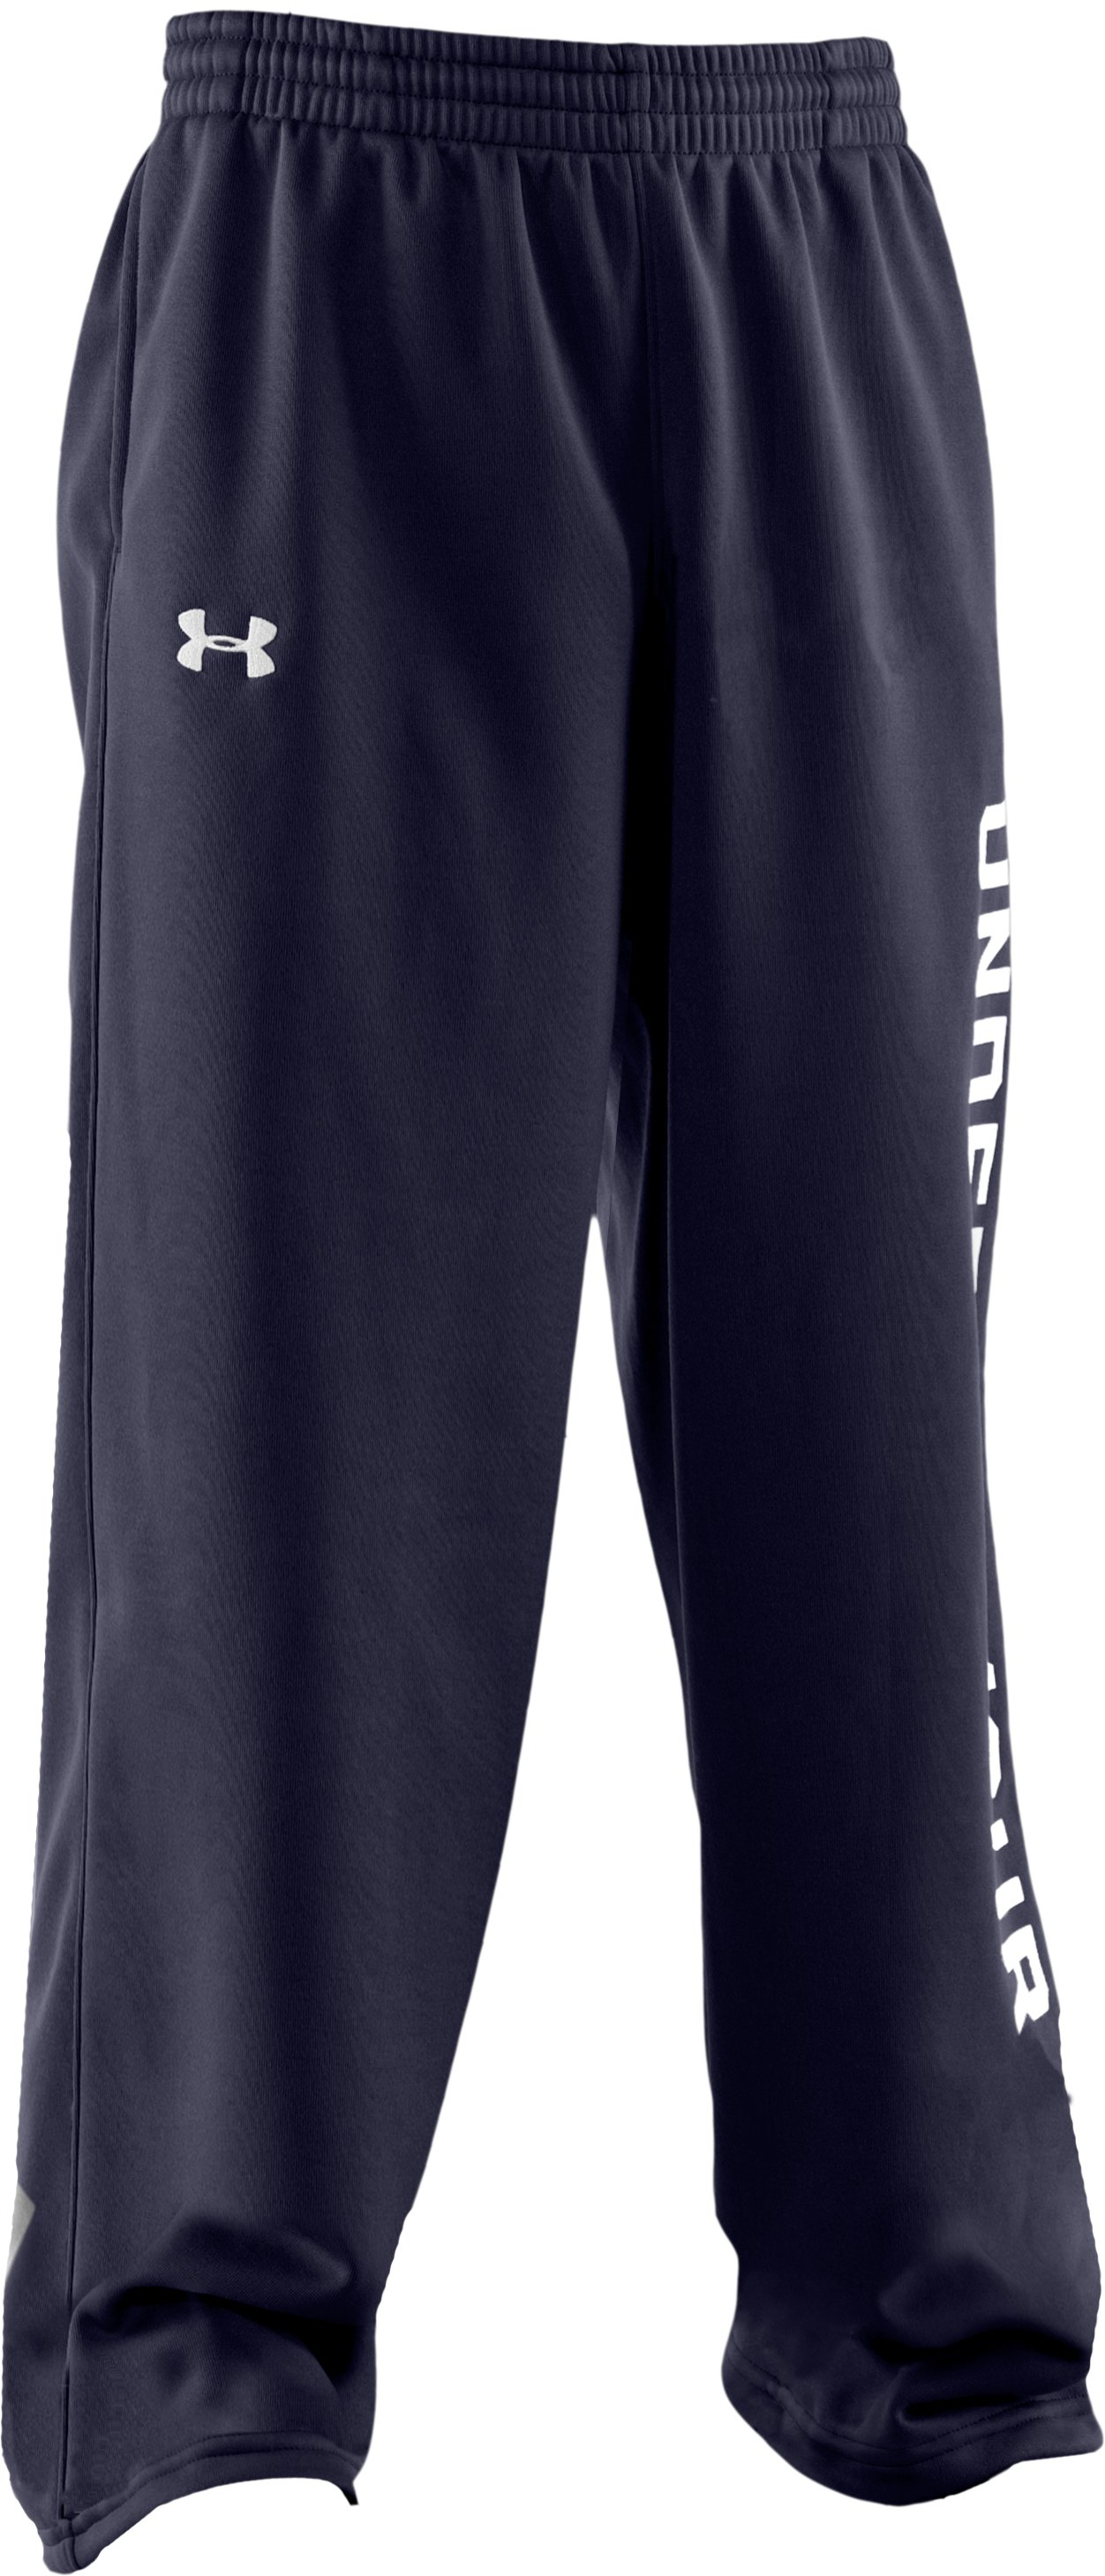 Boys' Armour® Fleece Storm Pants, Midnight Navy, undefined